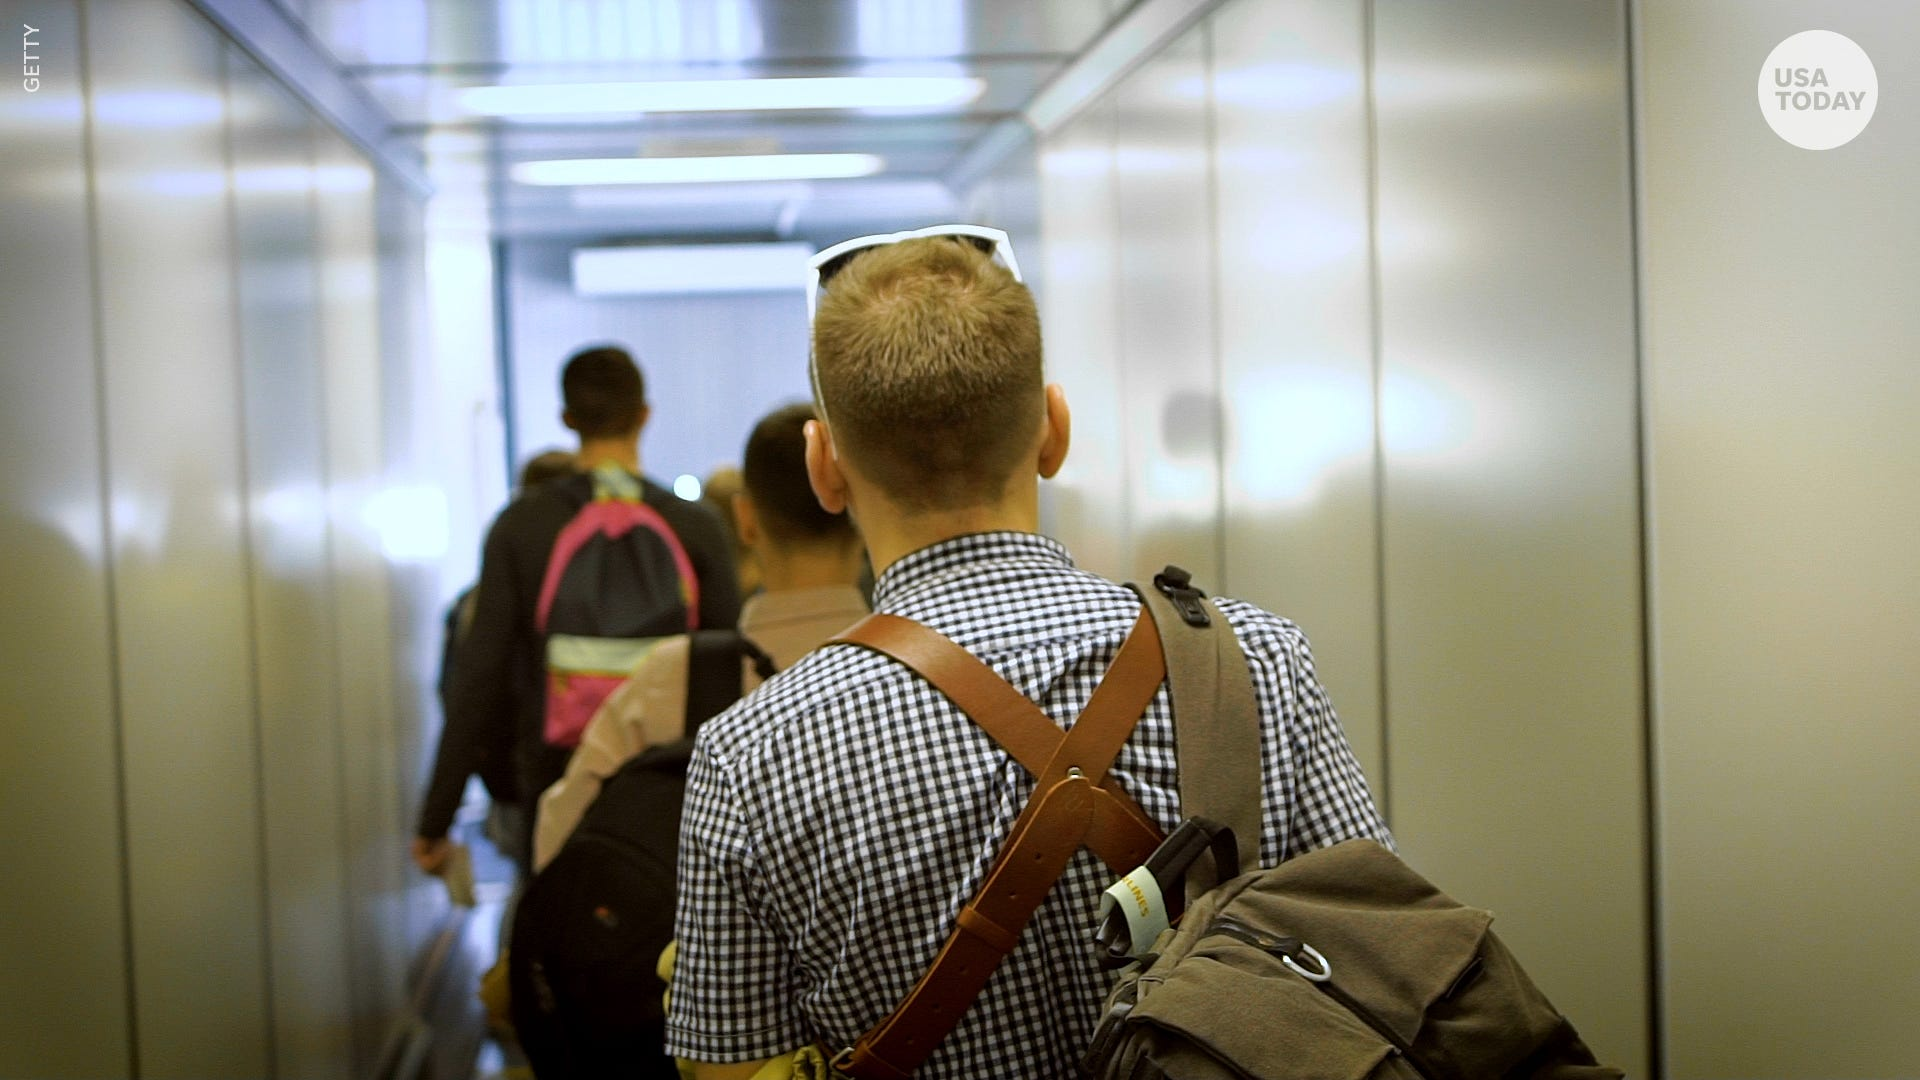 FAA seeks hefty fines from airline passengers who refuse to wear masks, disrupt flights